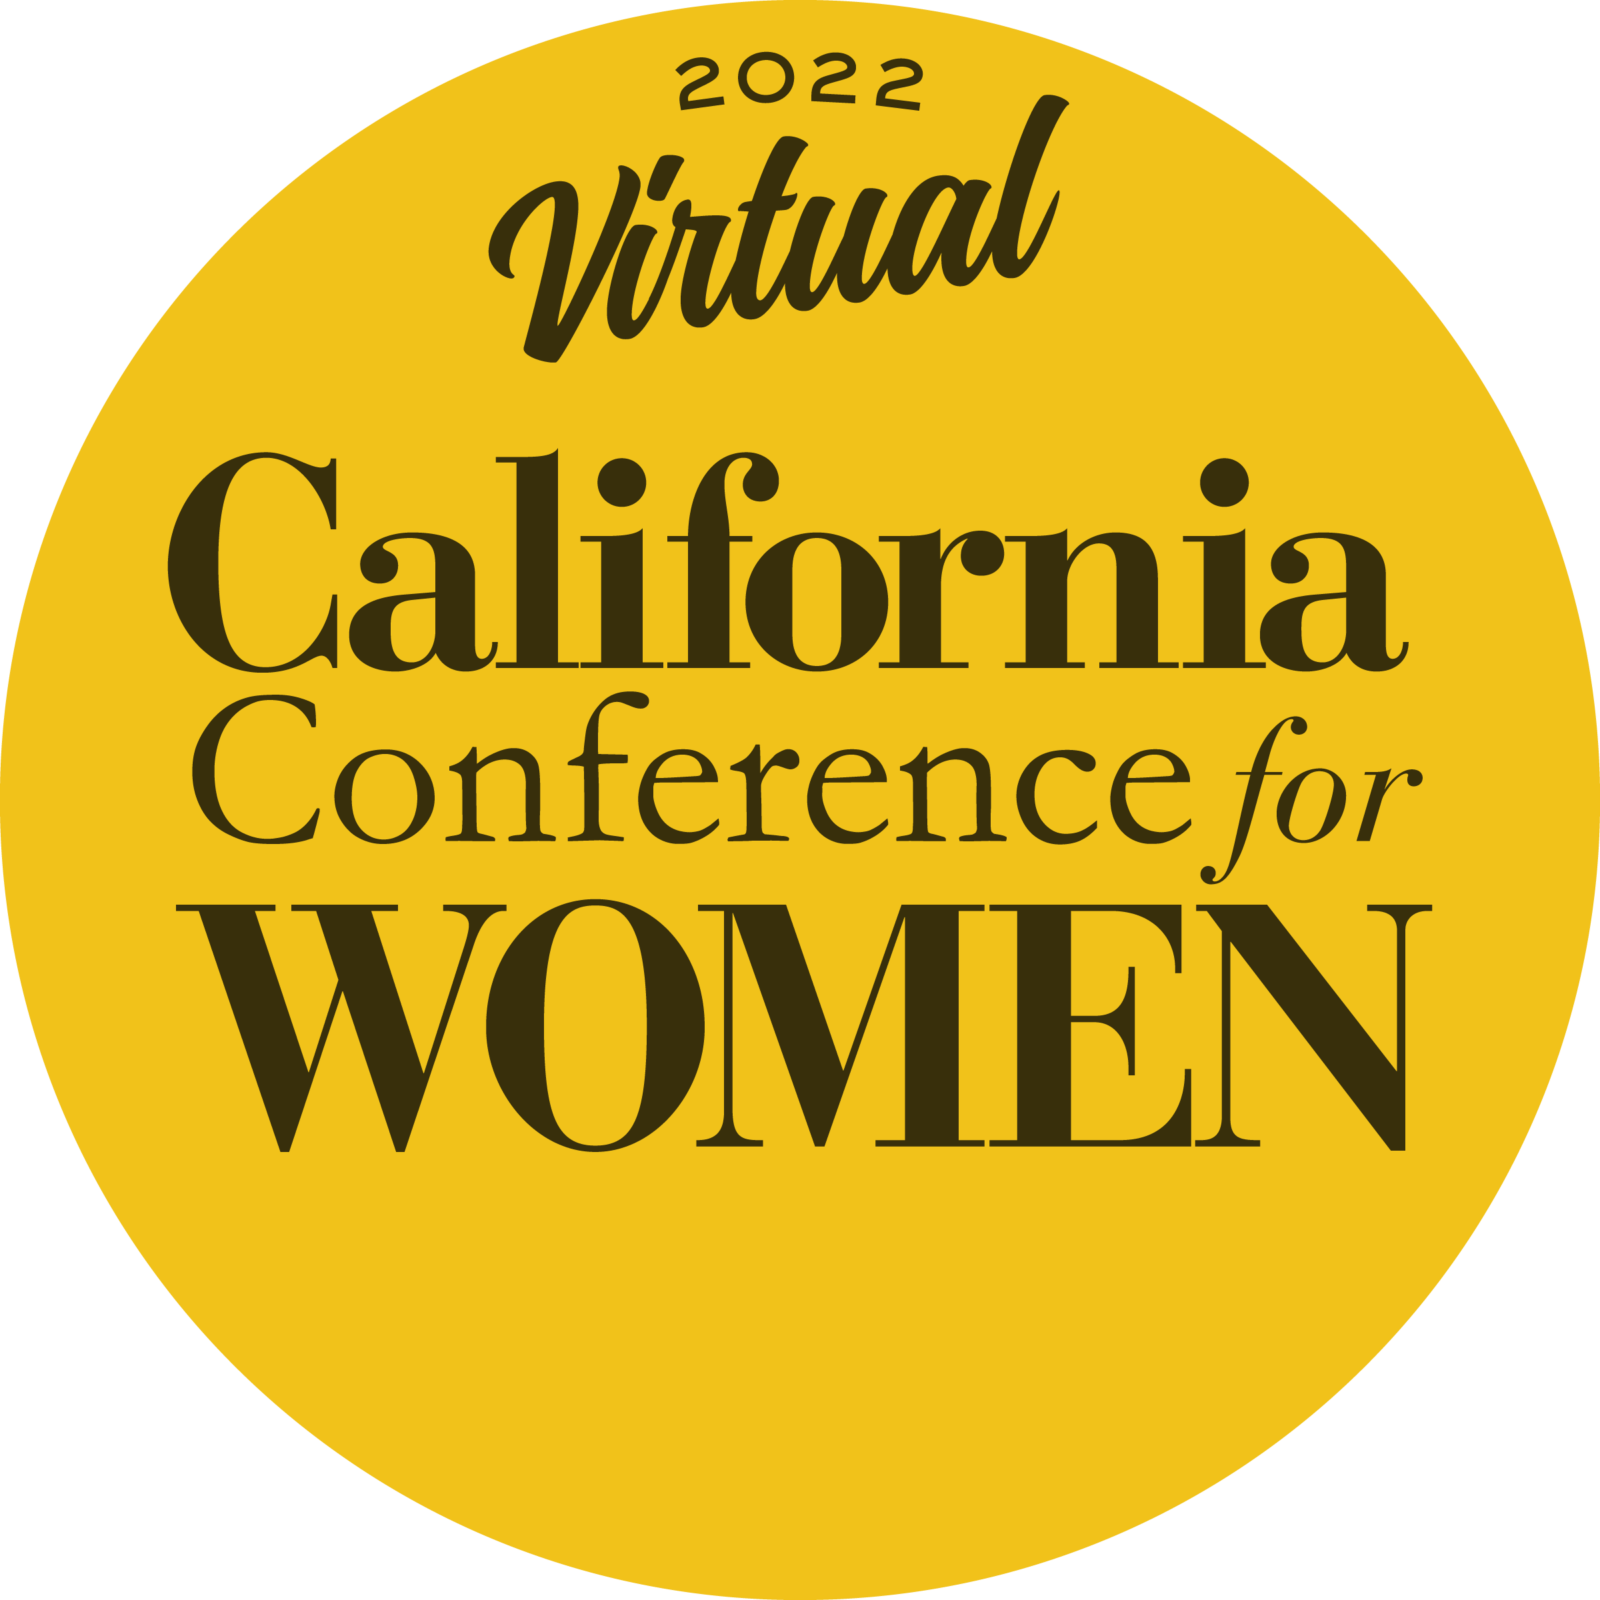 California Conference for Women March 2022 logo